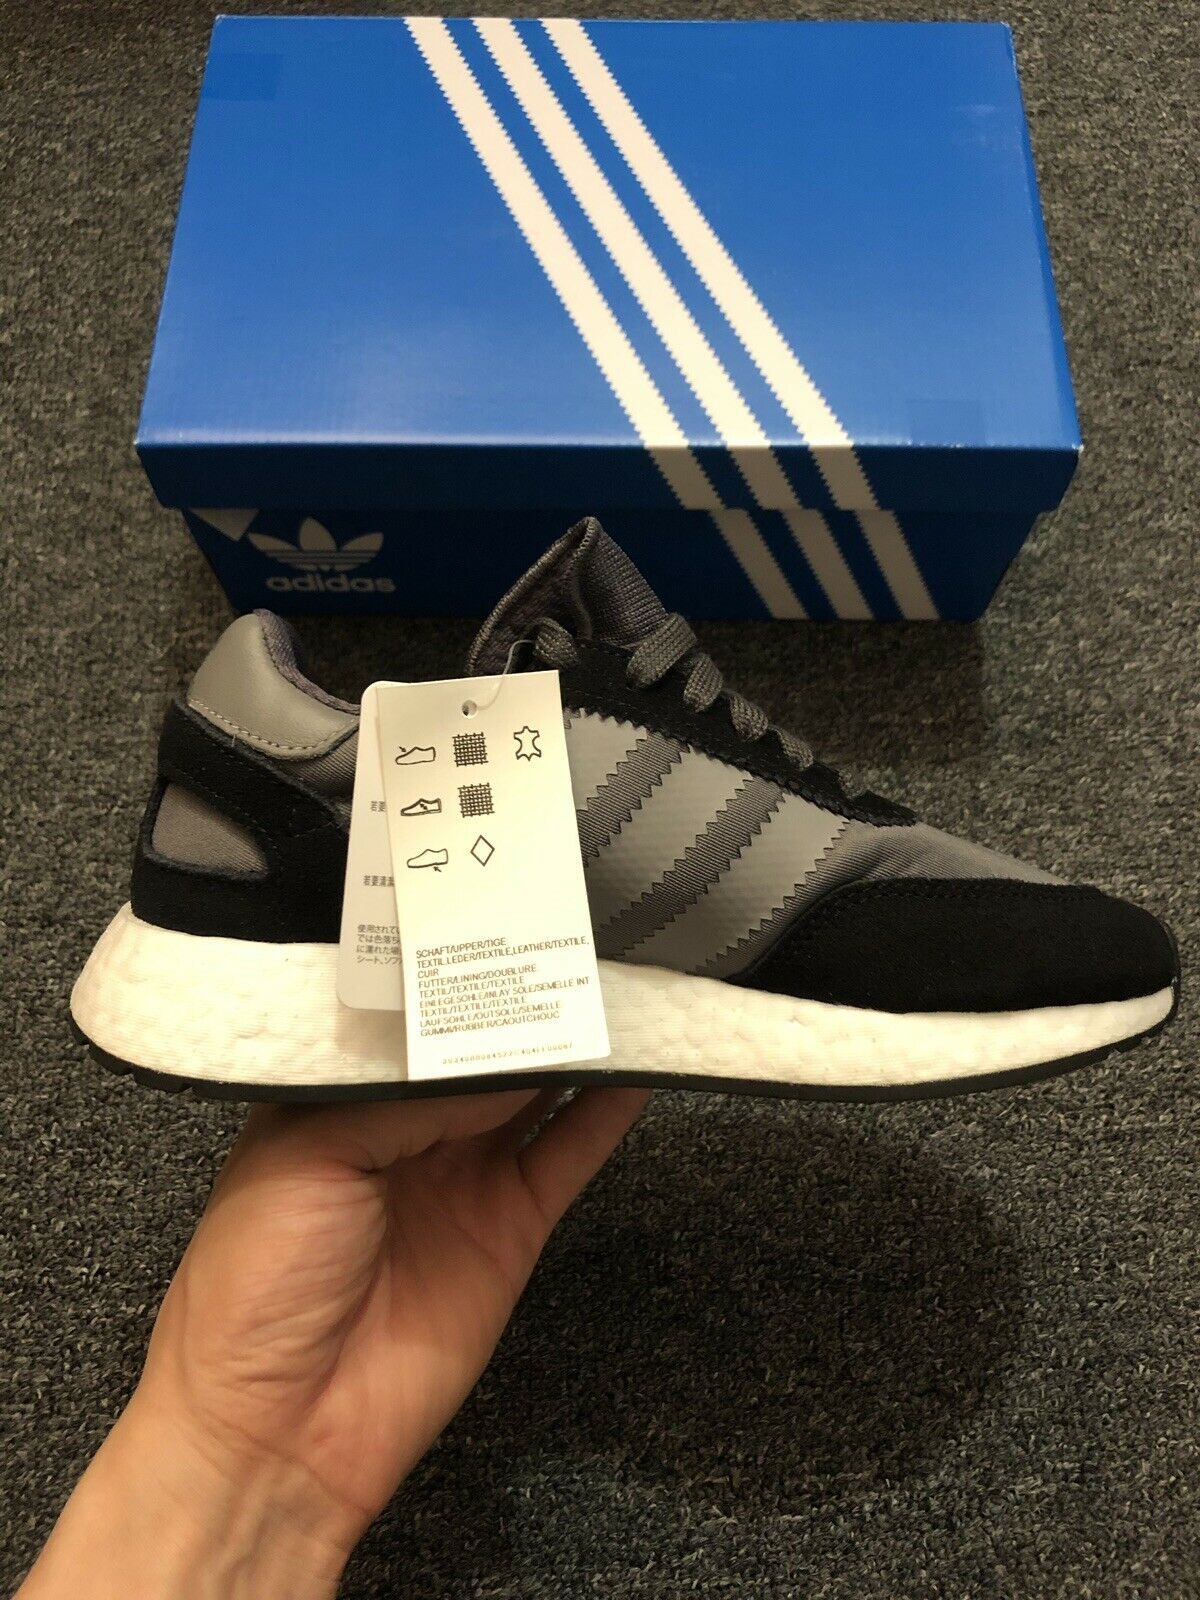 NWT  Women's Size 5 (Euro 36) Adidas Originals I-5923 Boost Running shoes D97353  comfortably